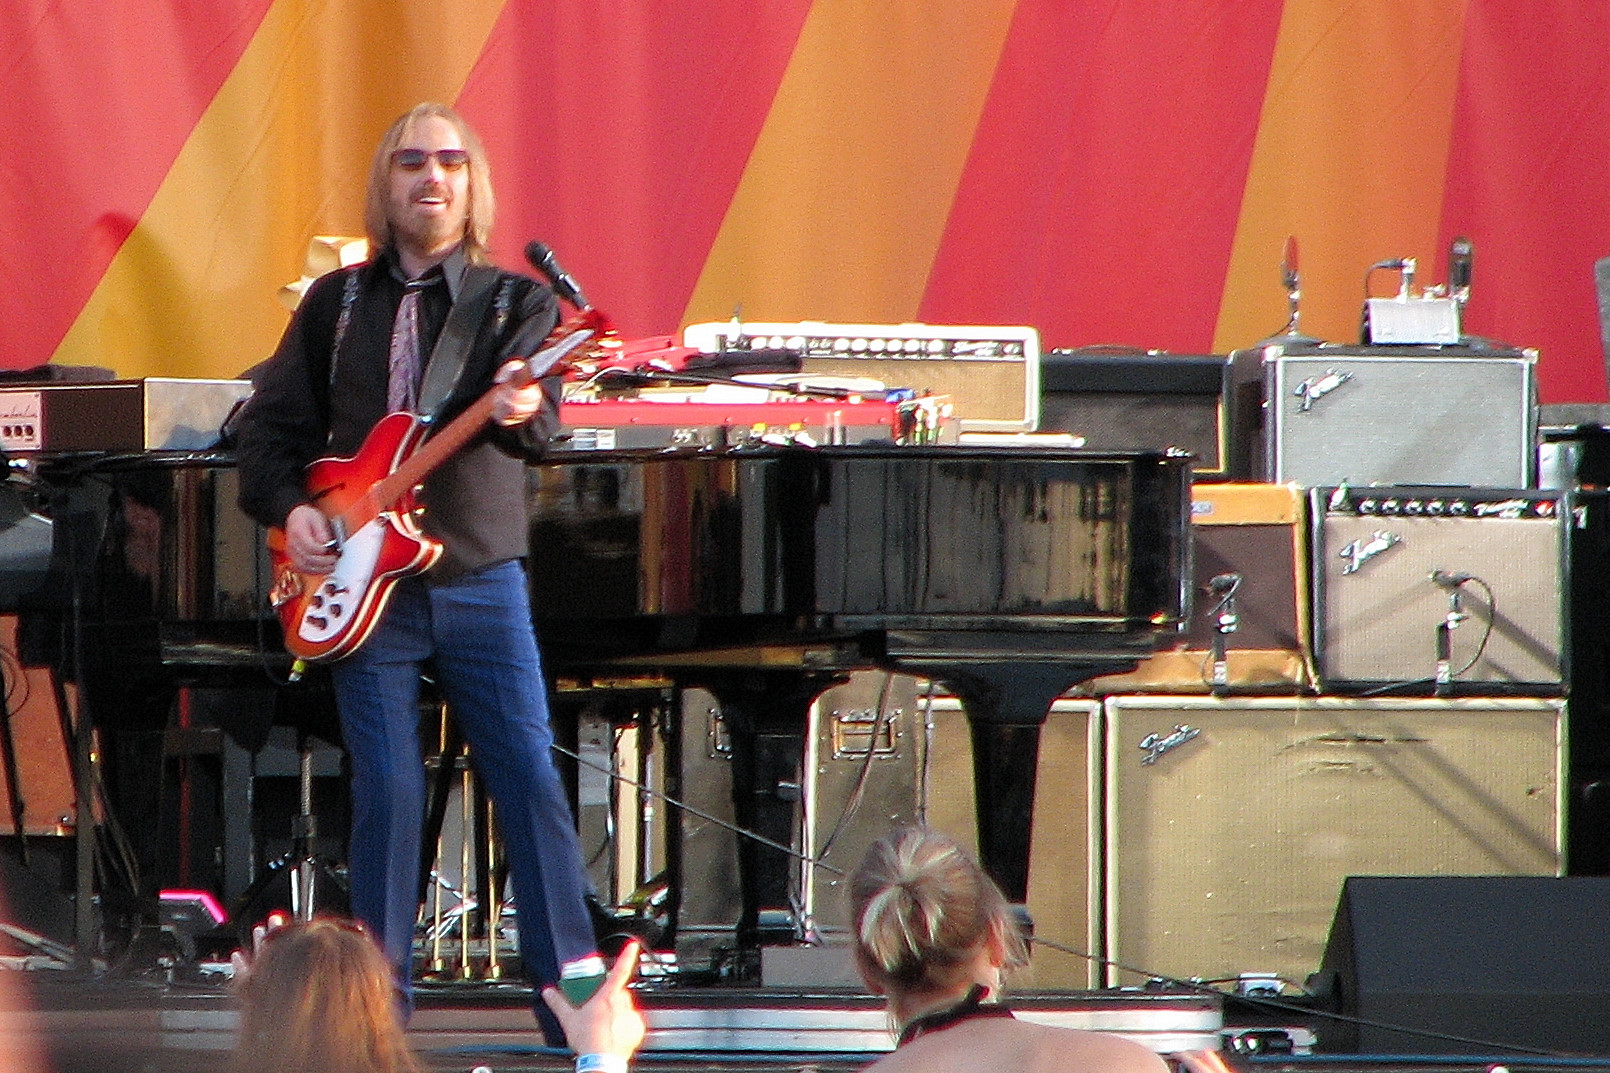 Tom Petty at Jazz Fest 2012